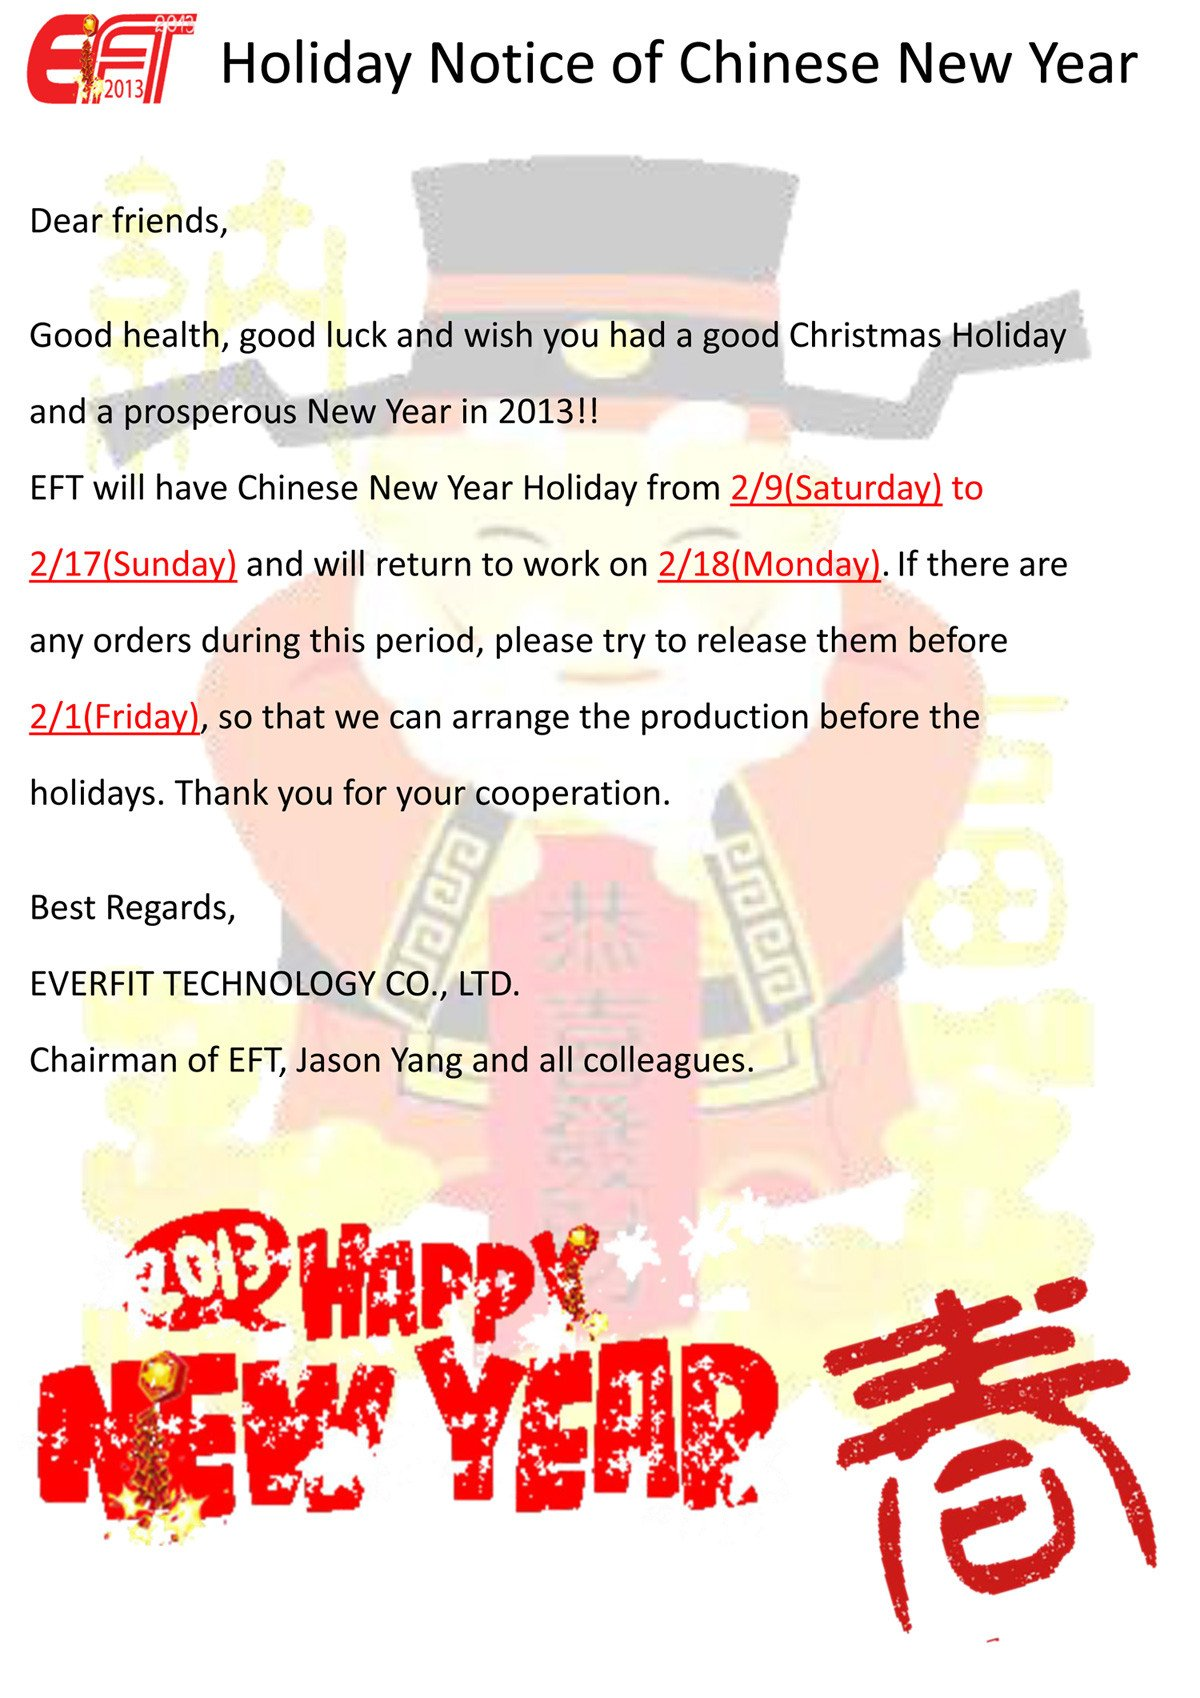 Holiday Closing Notice Template Holiday Notice Of Chinese New Year